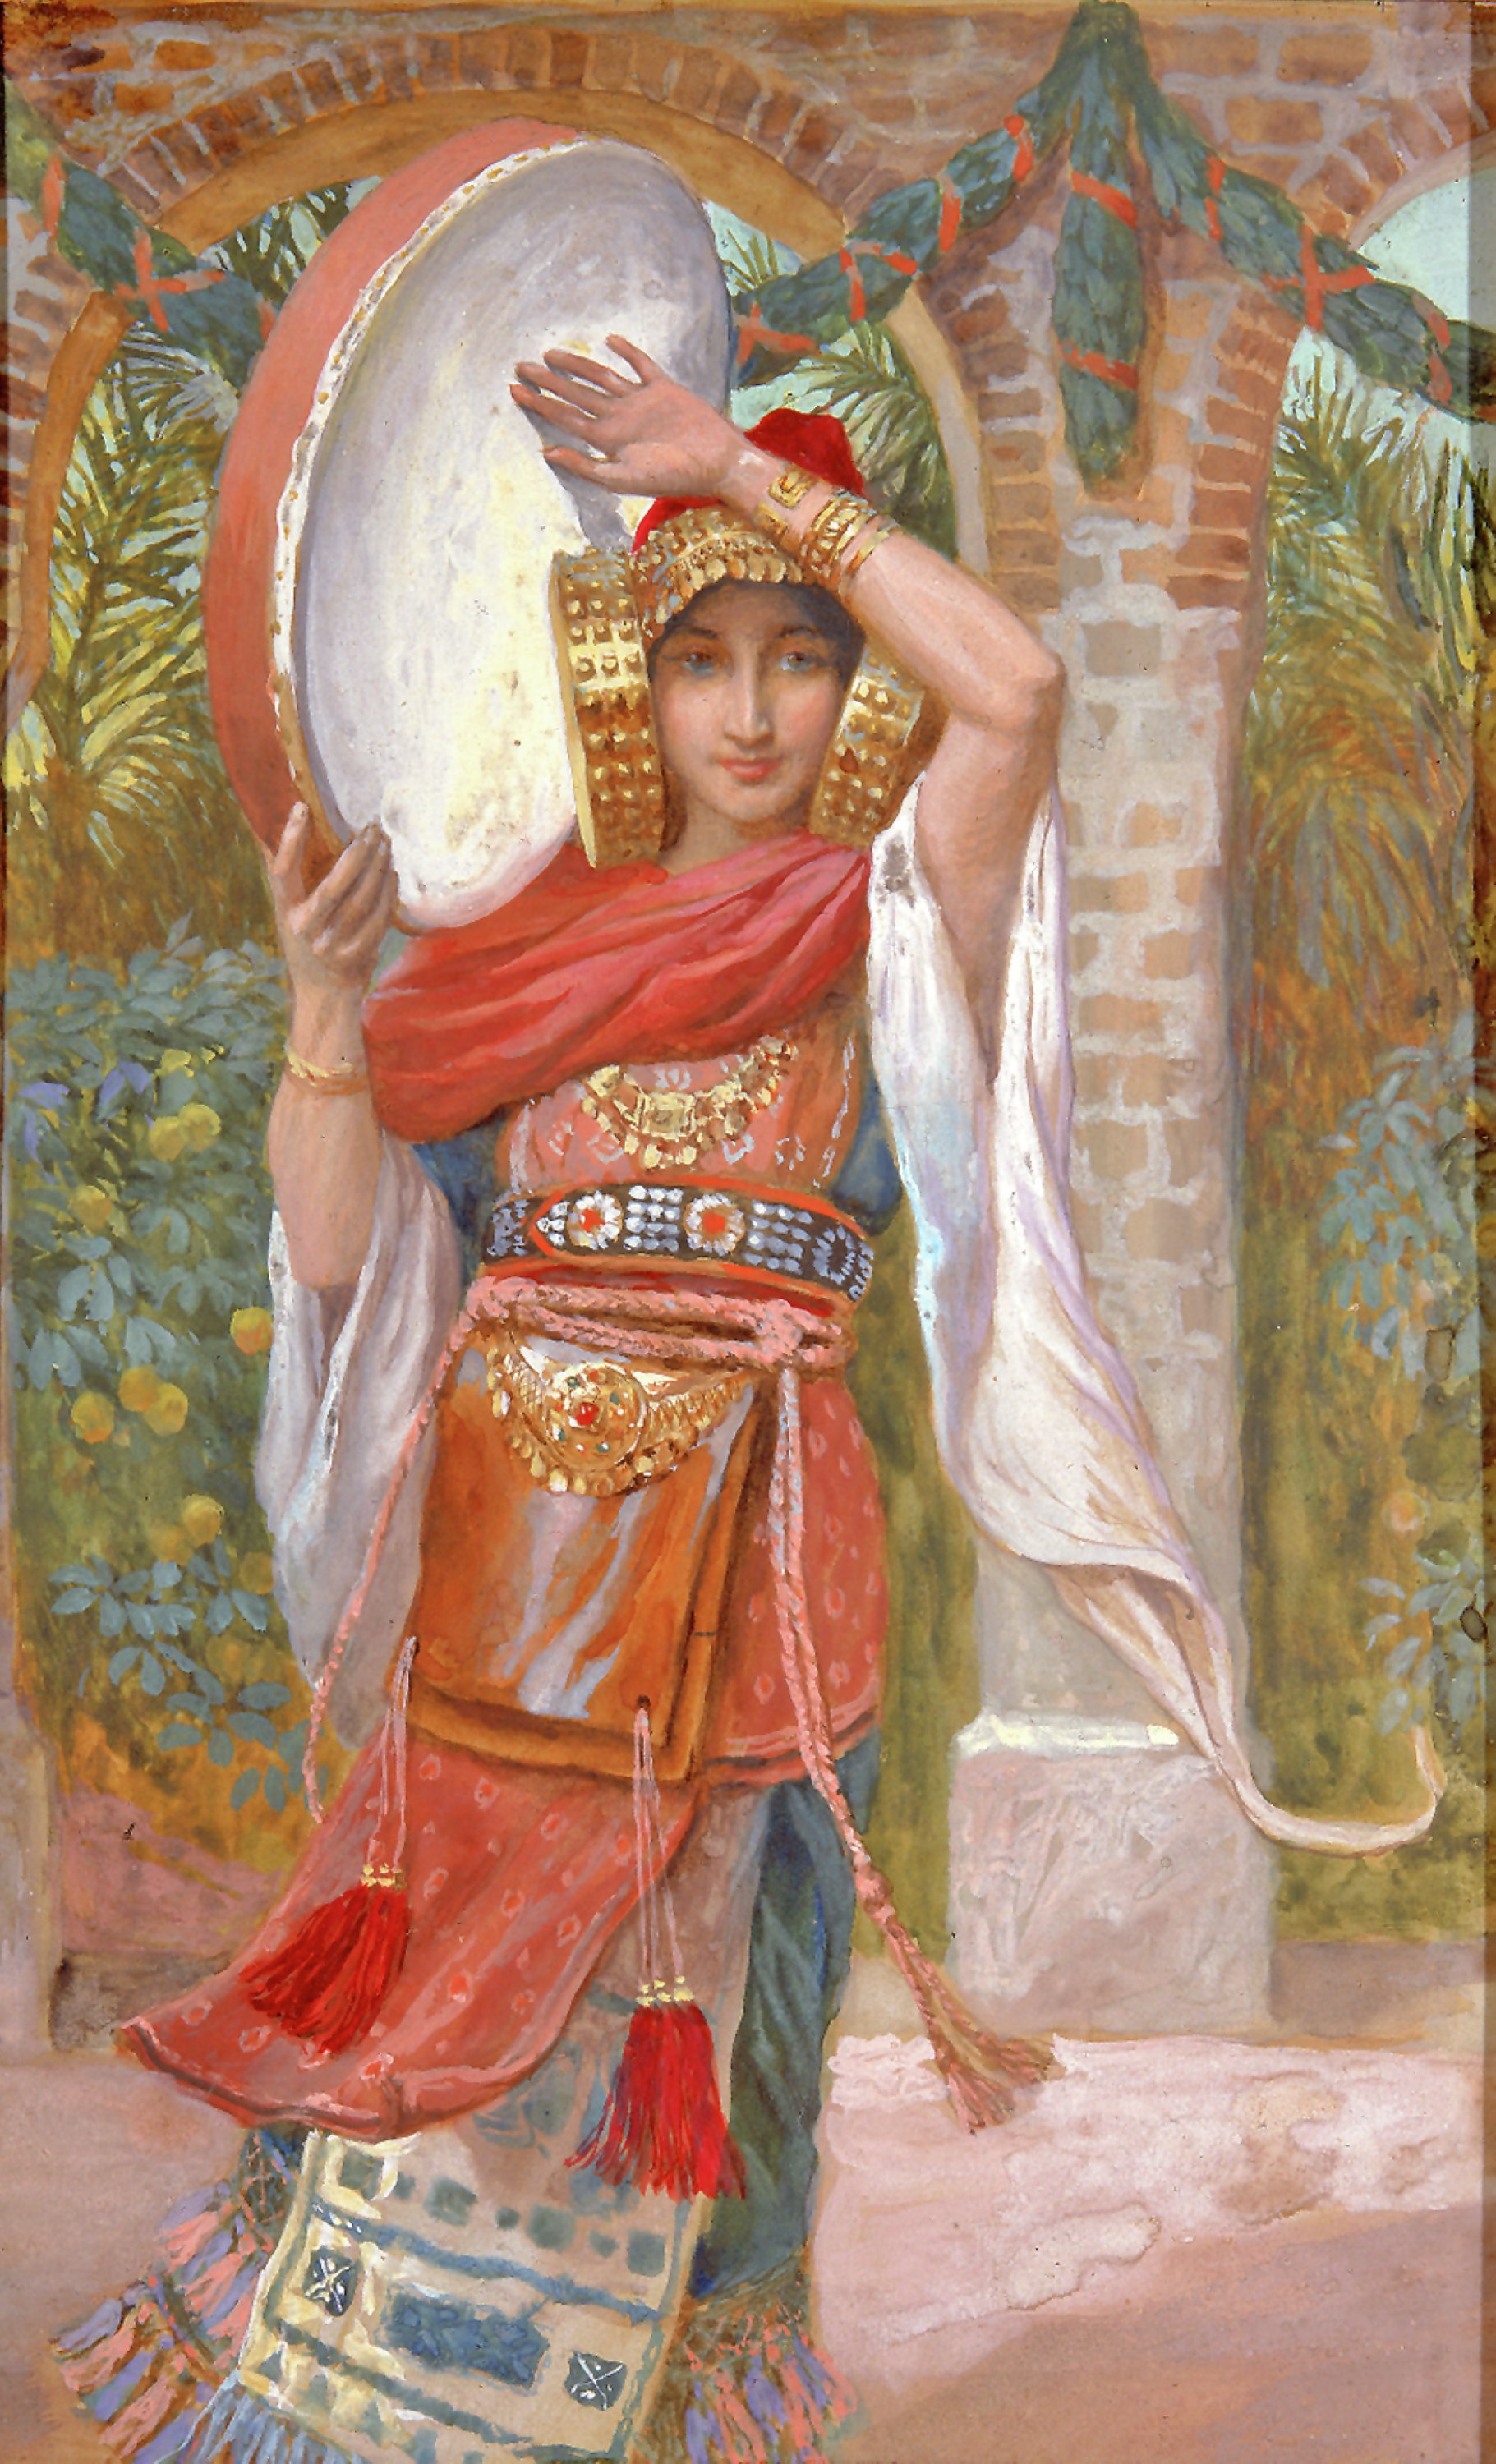 https://upload.wikimedia.org/wikipedia/commons/0/0c/Tissot_Jephthah%27s_Daughter.jpg